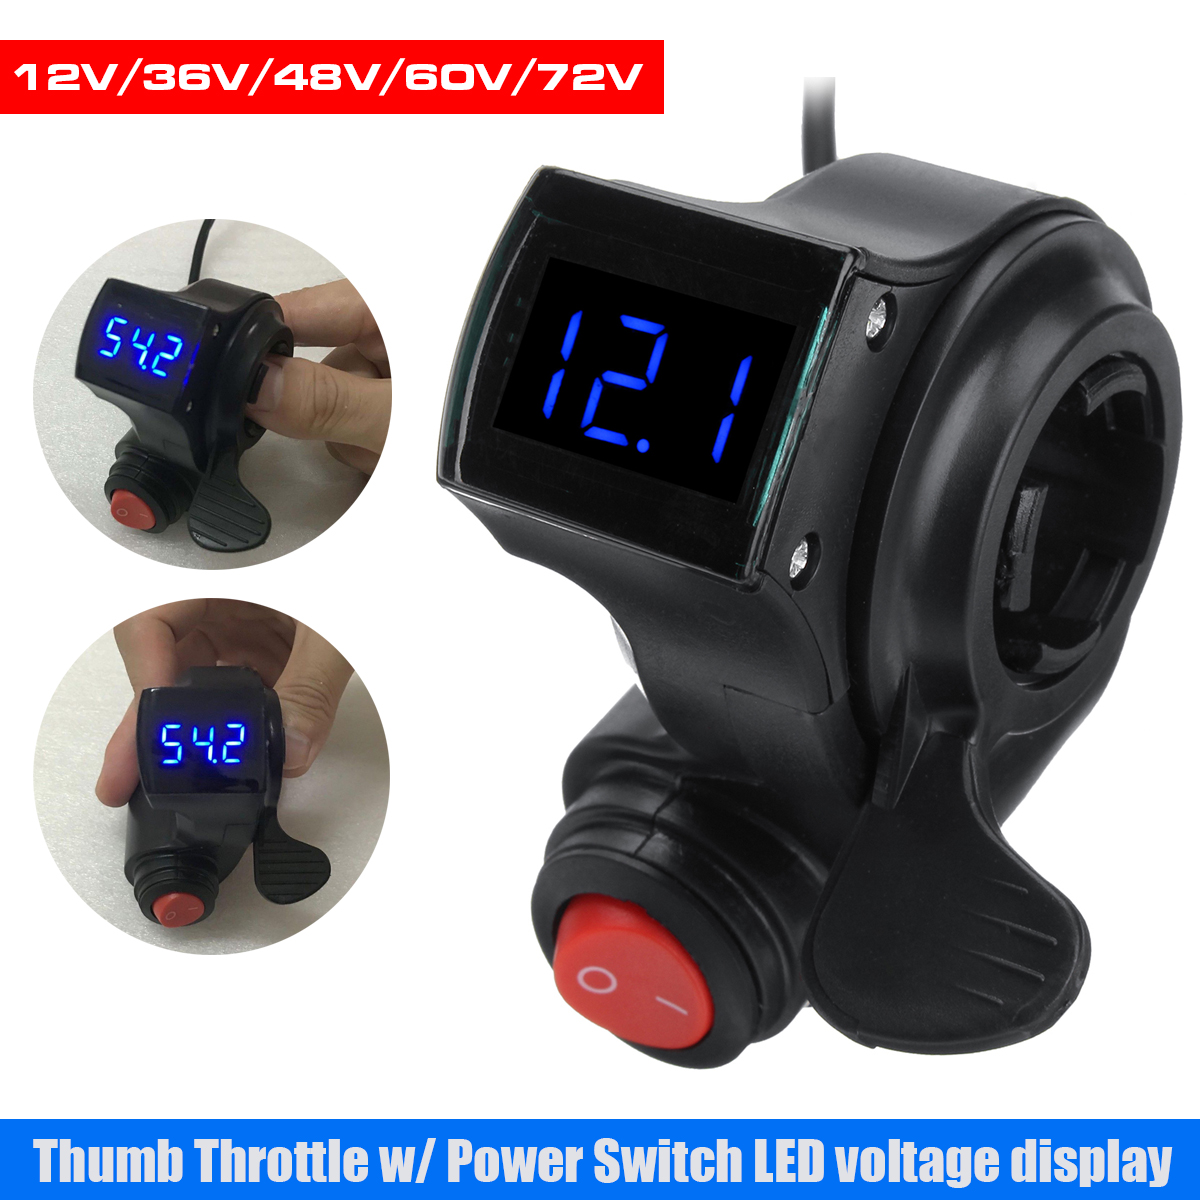 finger-thumb-throttle-electric-scooter-with-power-switch-led-display-switch-handlebar-grips-for-electric-bike-36v-48-60-72v